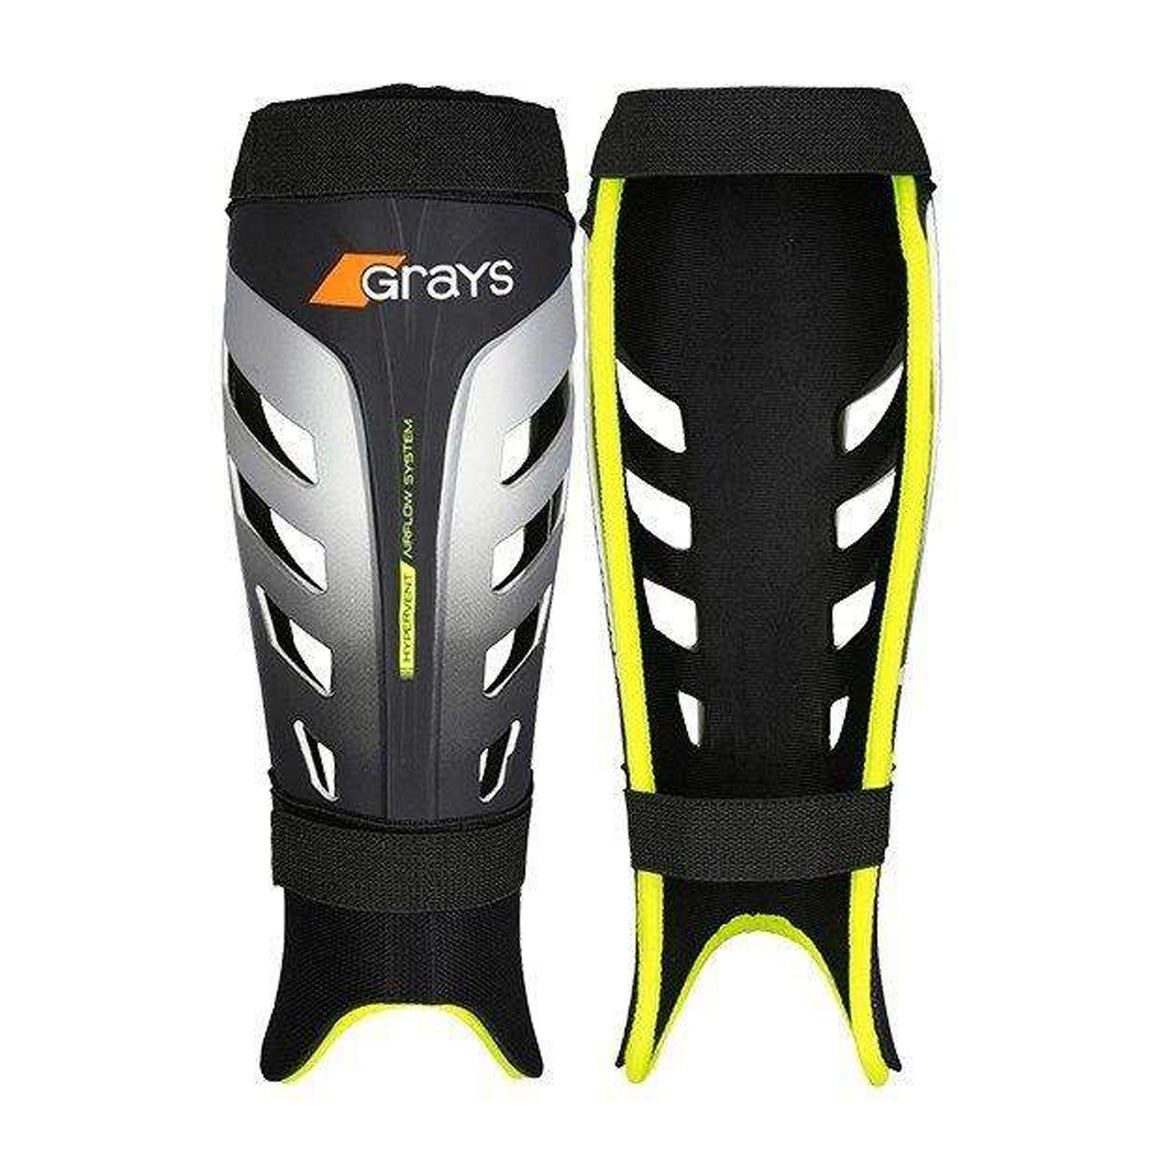 G800 Hockey Shinpad for Men in Black & Lemon